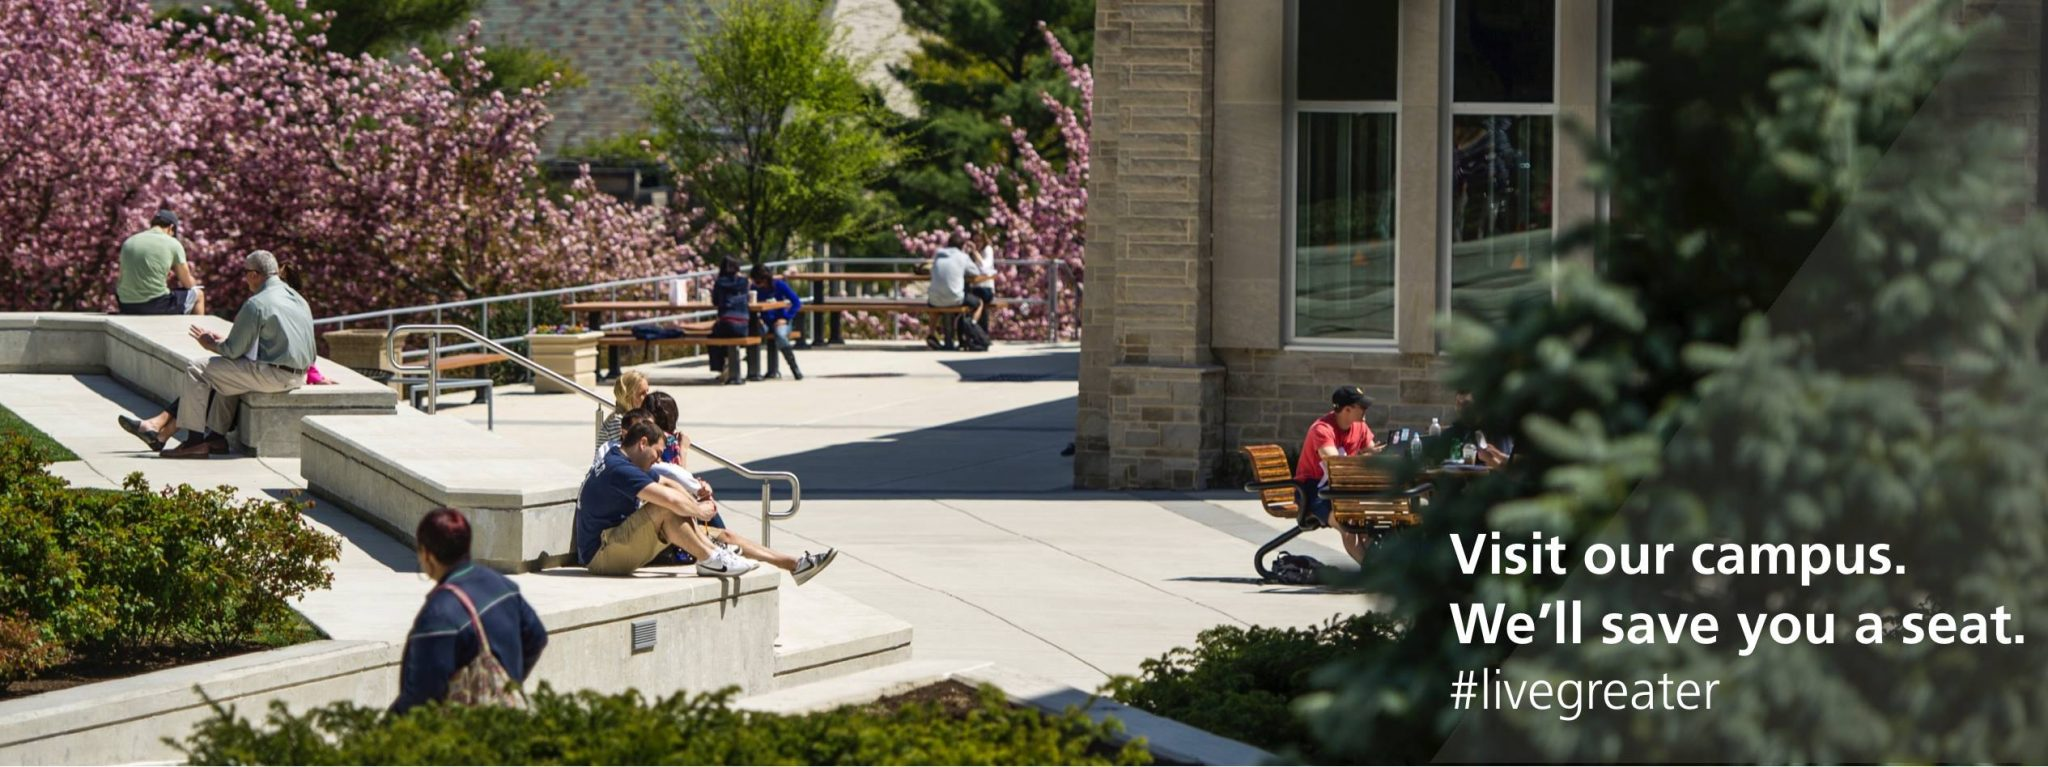 "Students sit in the sunshine through the SJU quad. The screen reads, ""Visit our campus. We'll save you a seat. #livegreater"""